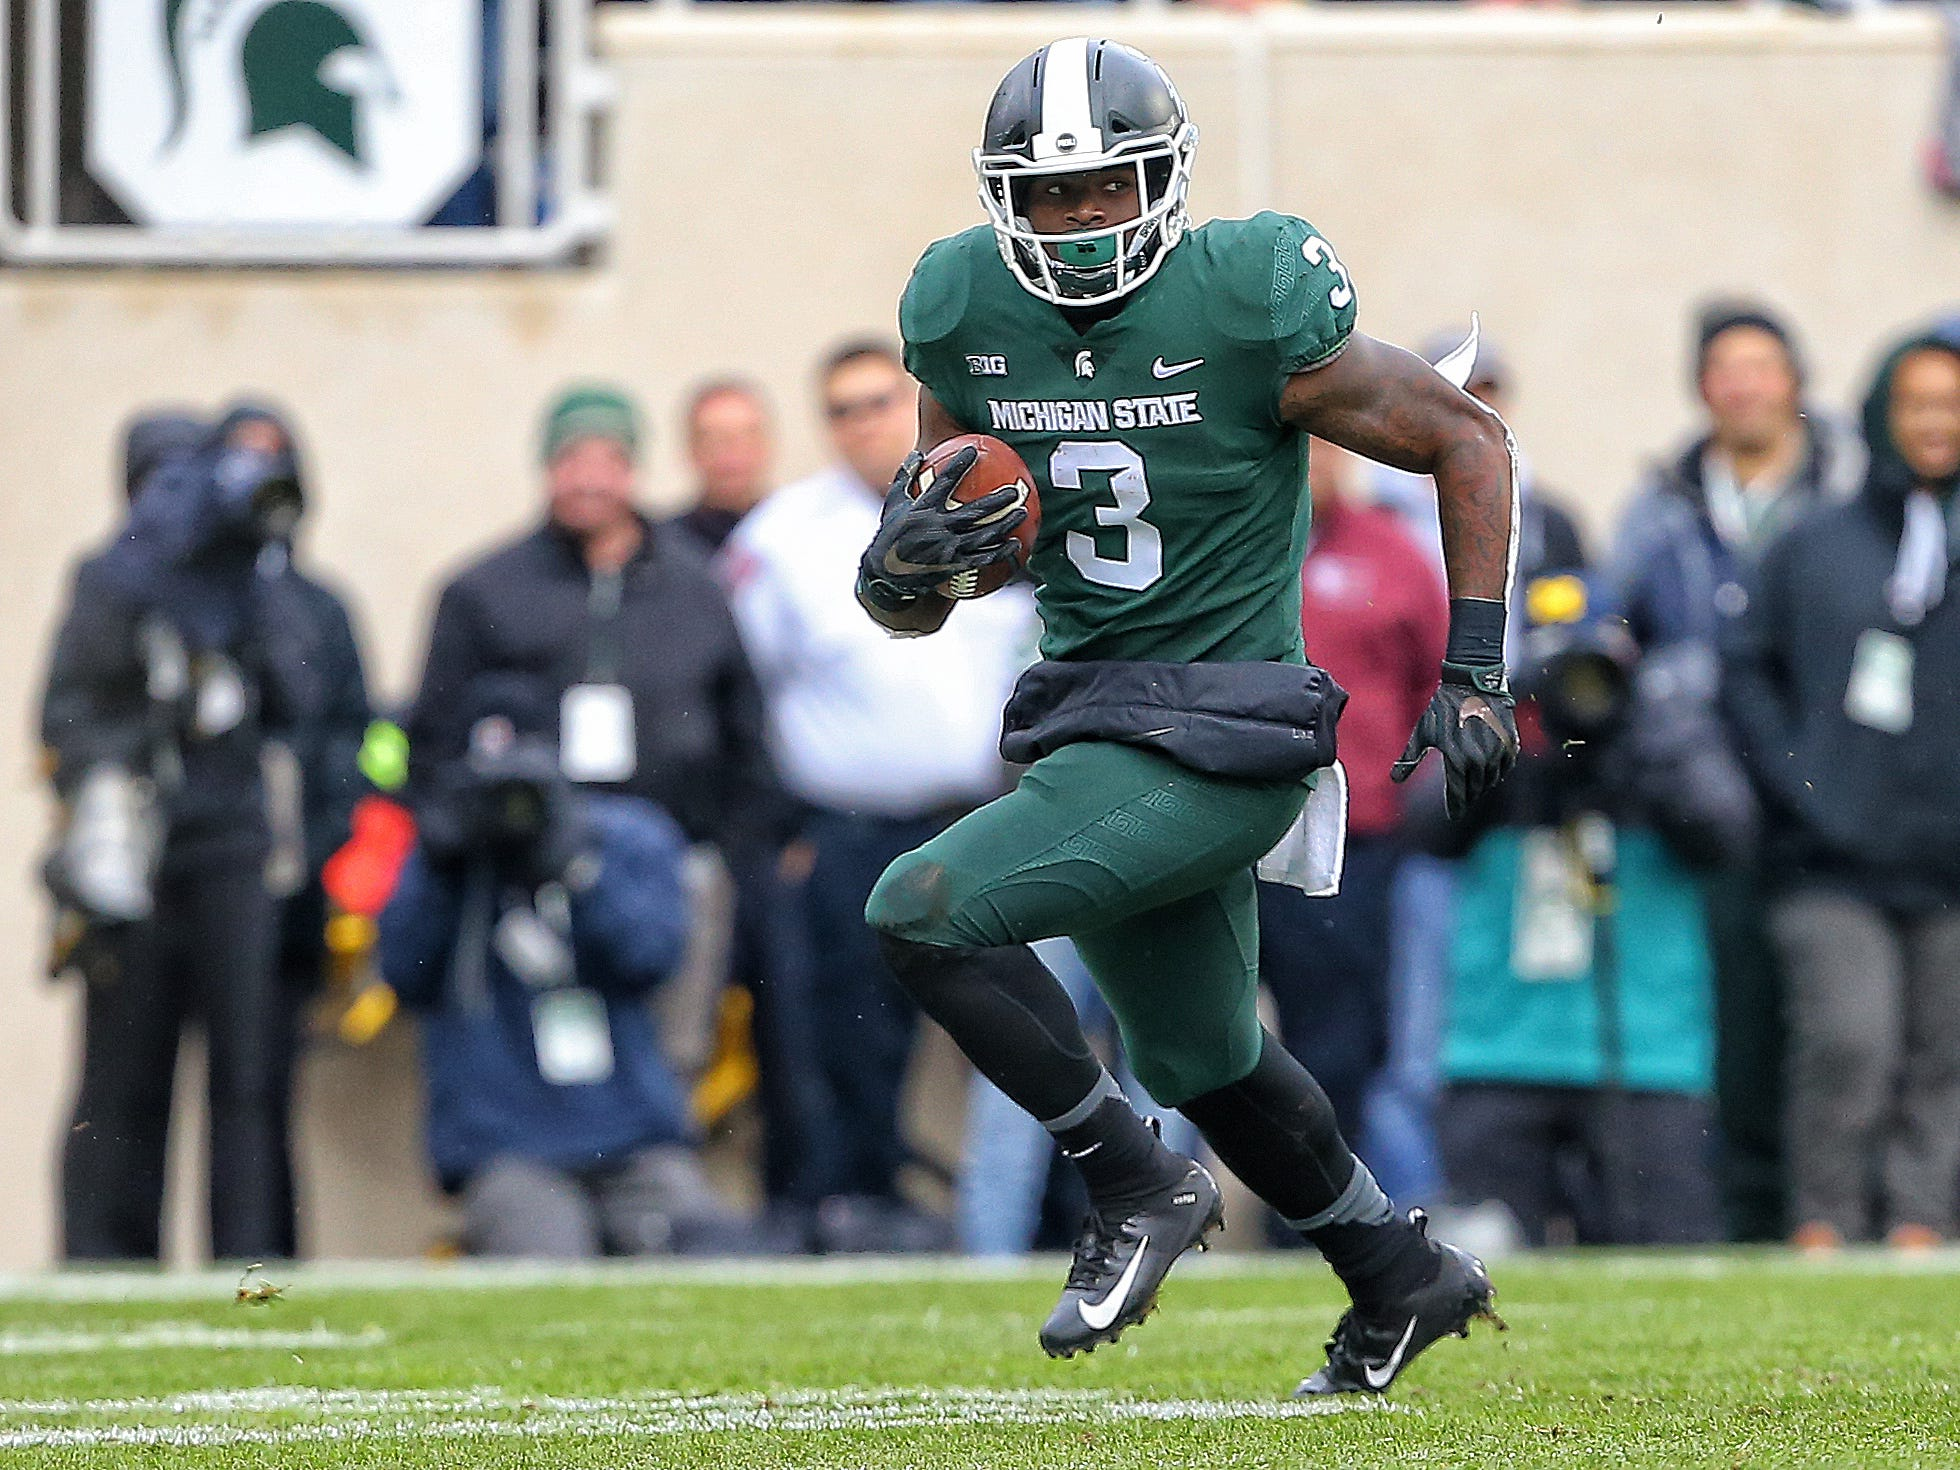 LJ Scott, RB, Michigan State